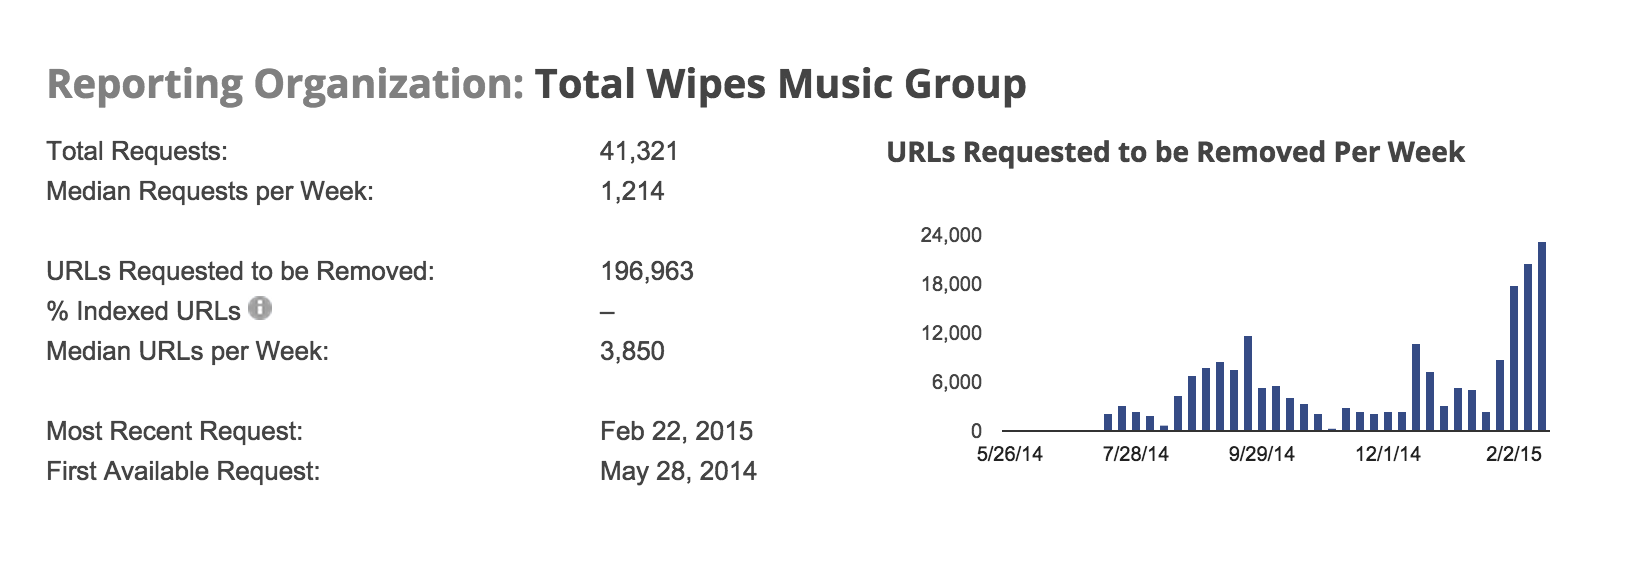 The Google Transparency Report shows the sheer volume of DMCA requests made by Total Wipes in just the last few months.